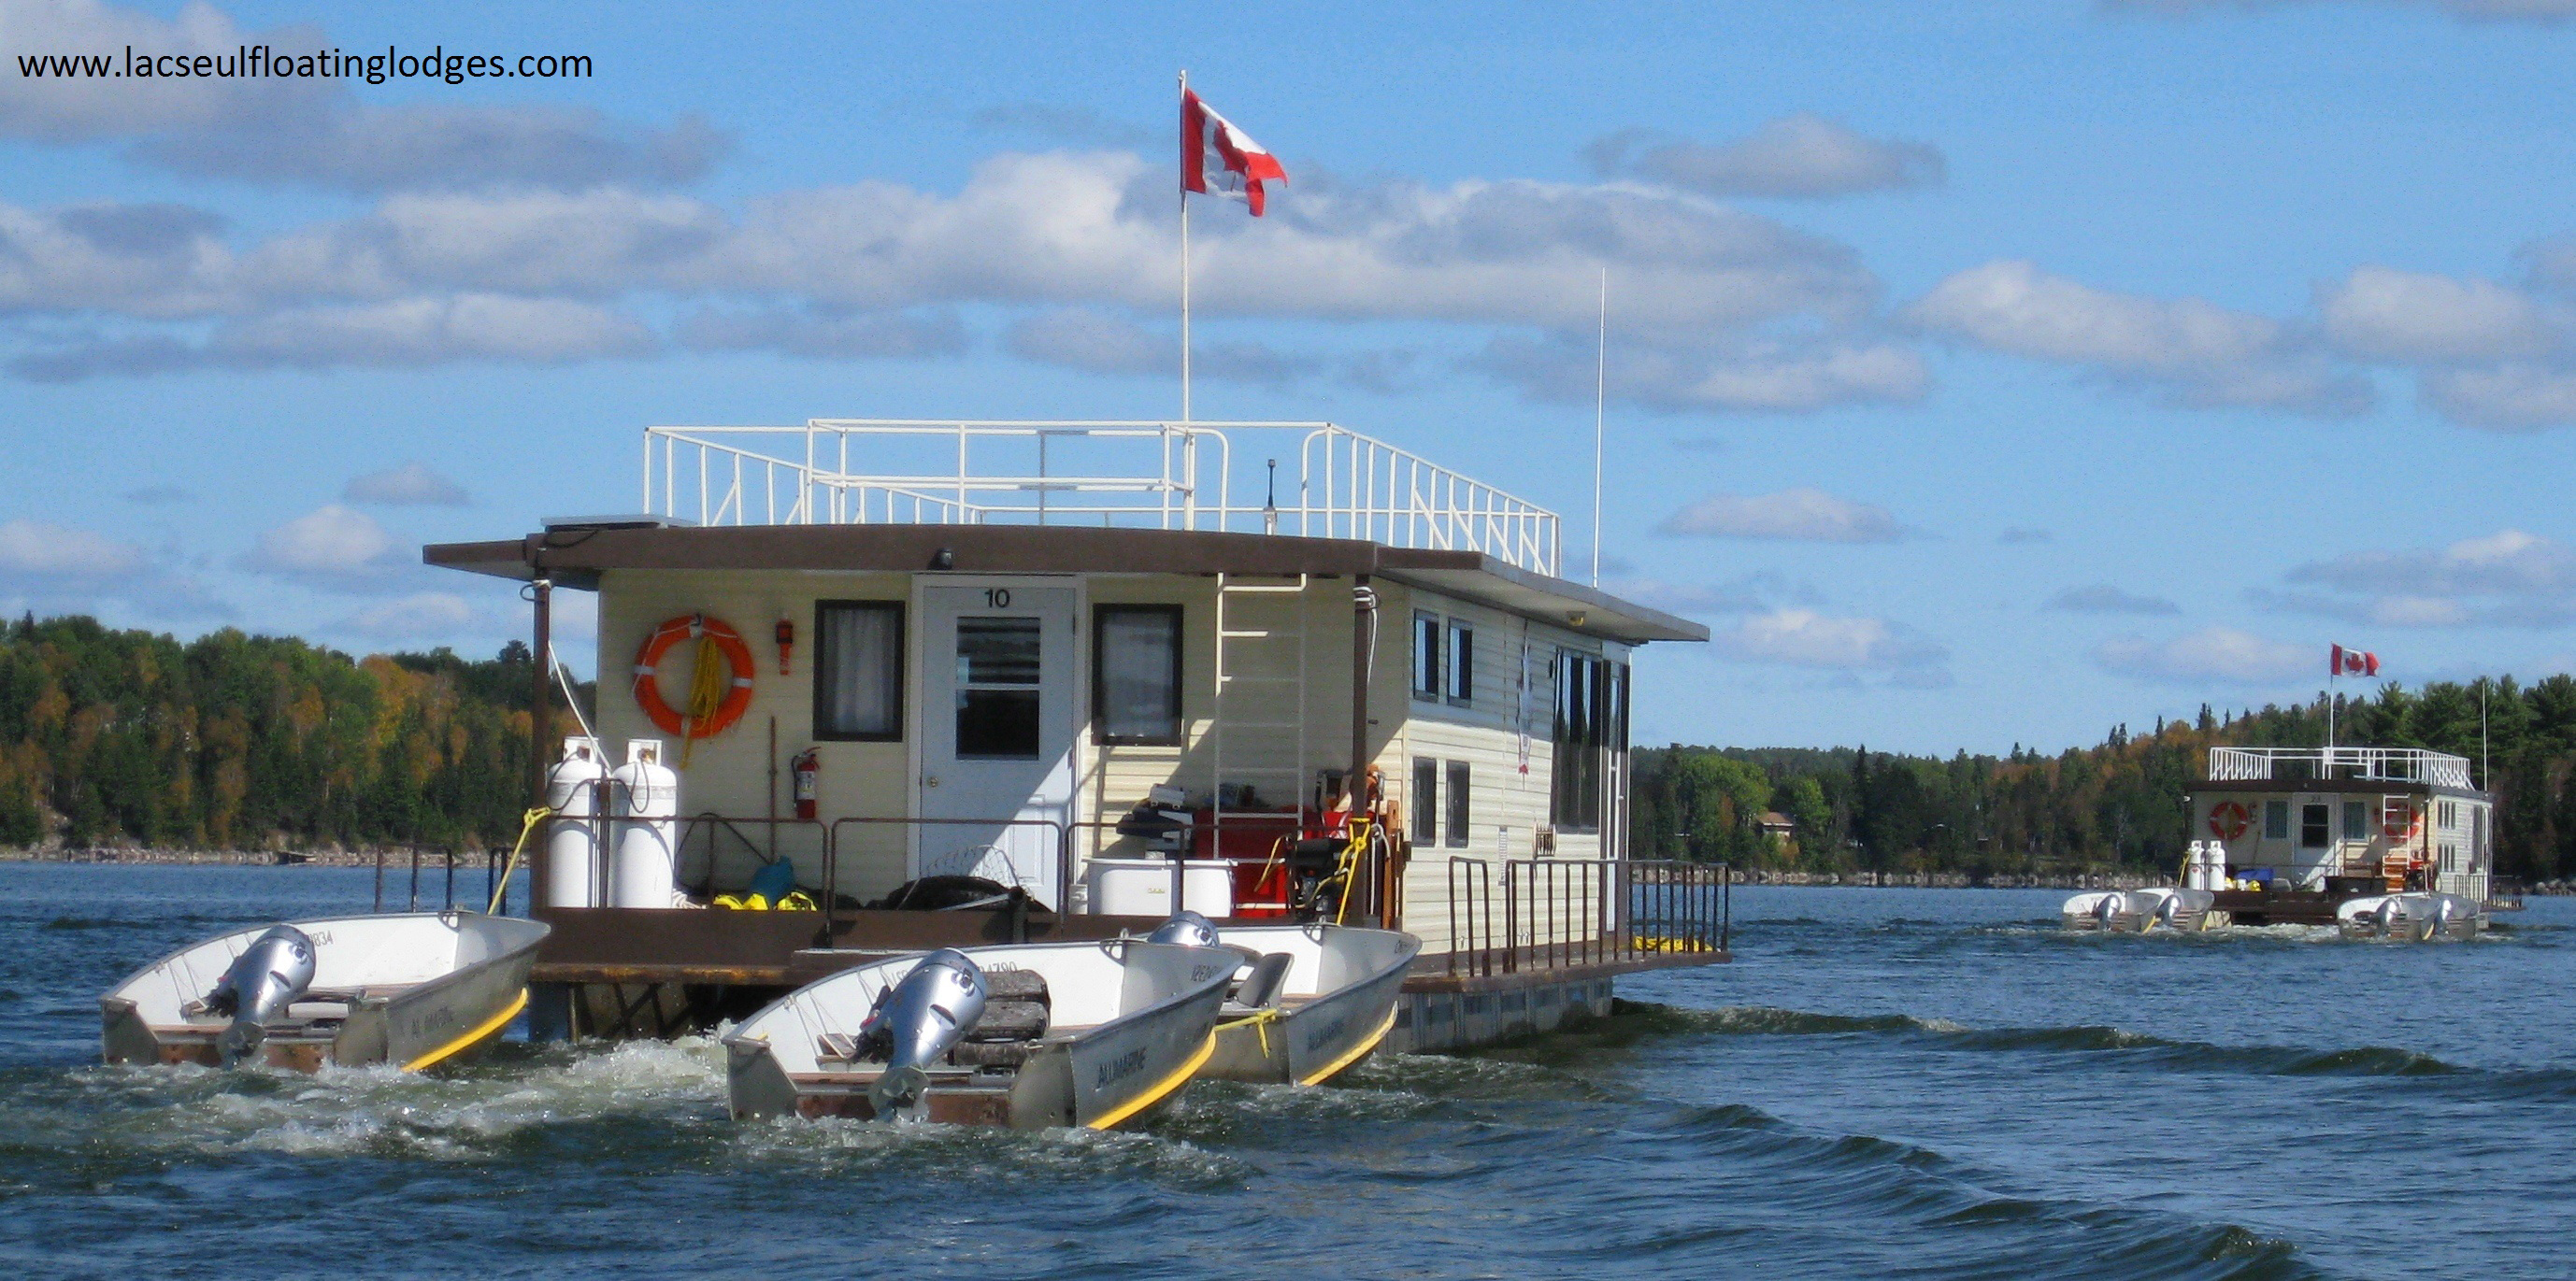 Lac seul floating lodges sunset country ontario canada for Canada fishing lodges